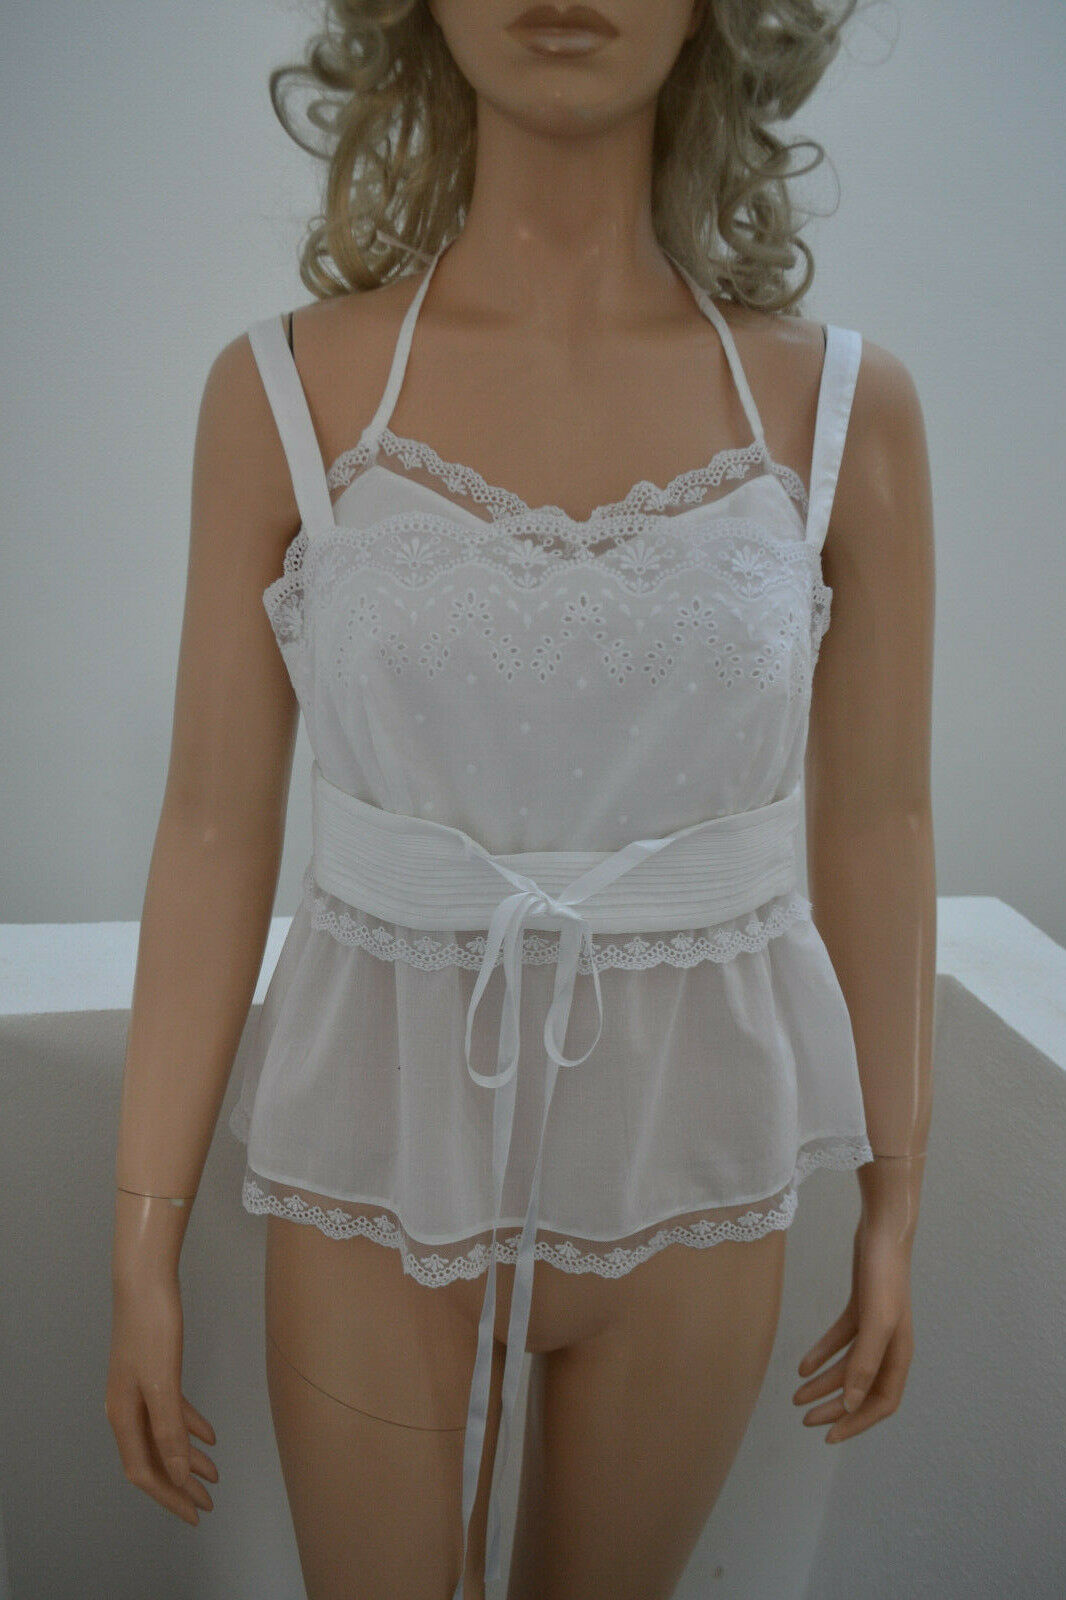 Wolford May Dance Top bluese weiß white 38